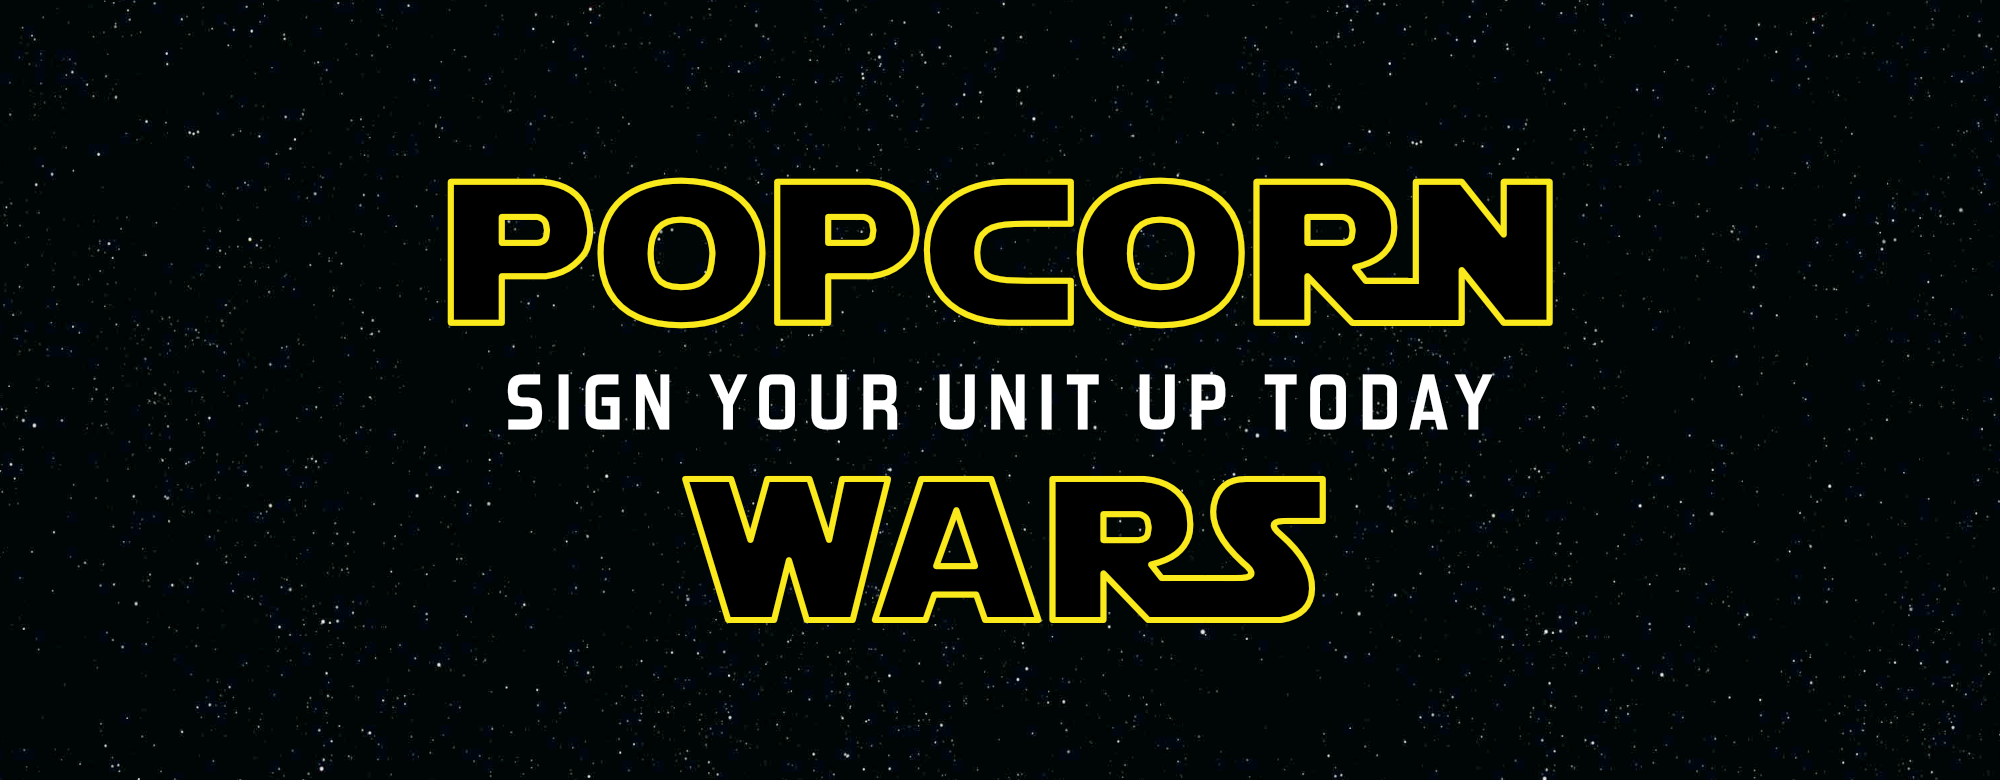 Are you ready for Popcorn Wars? Sign your unit up today.